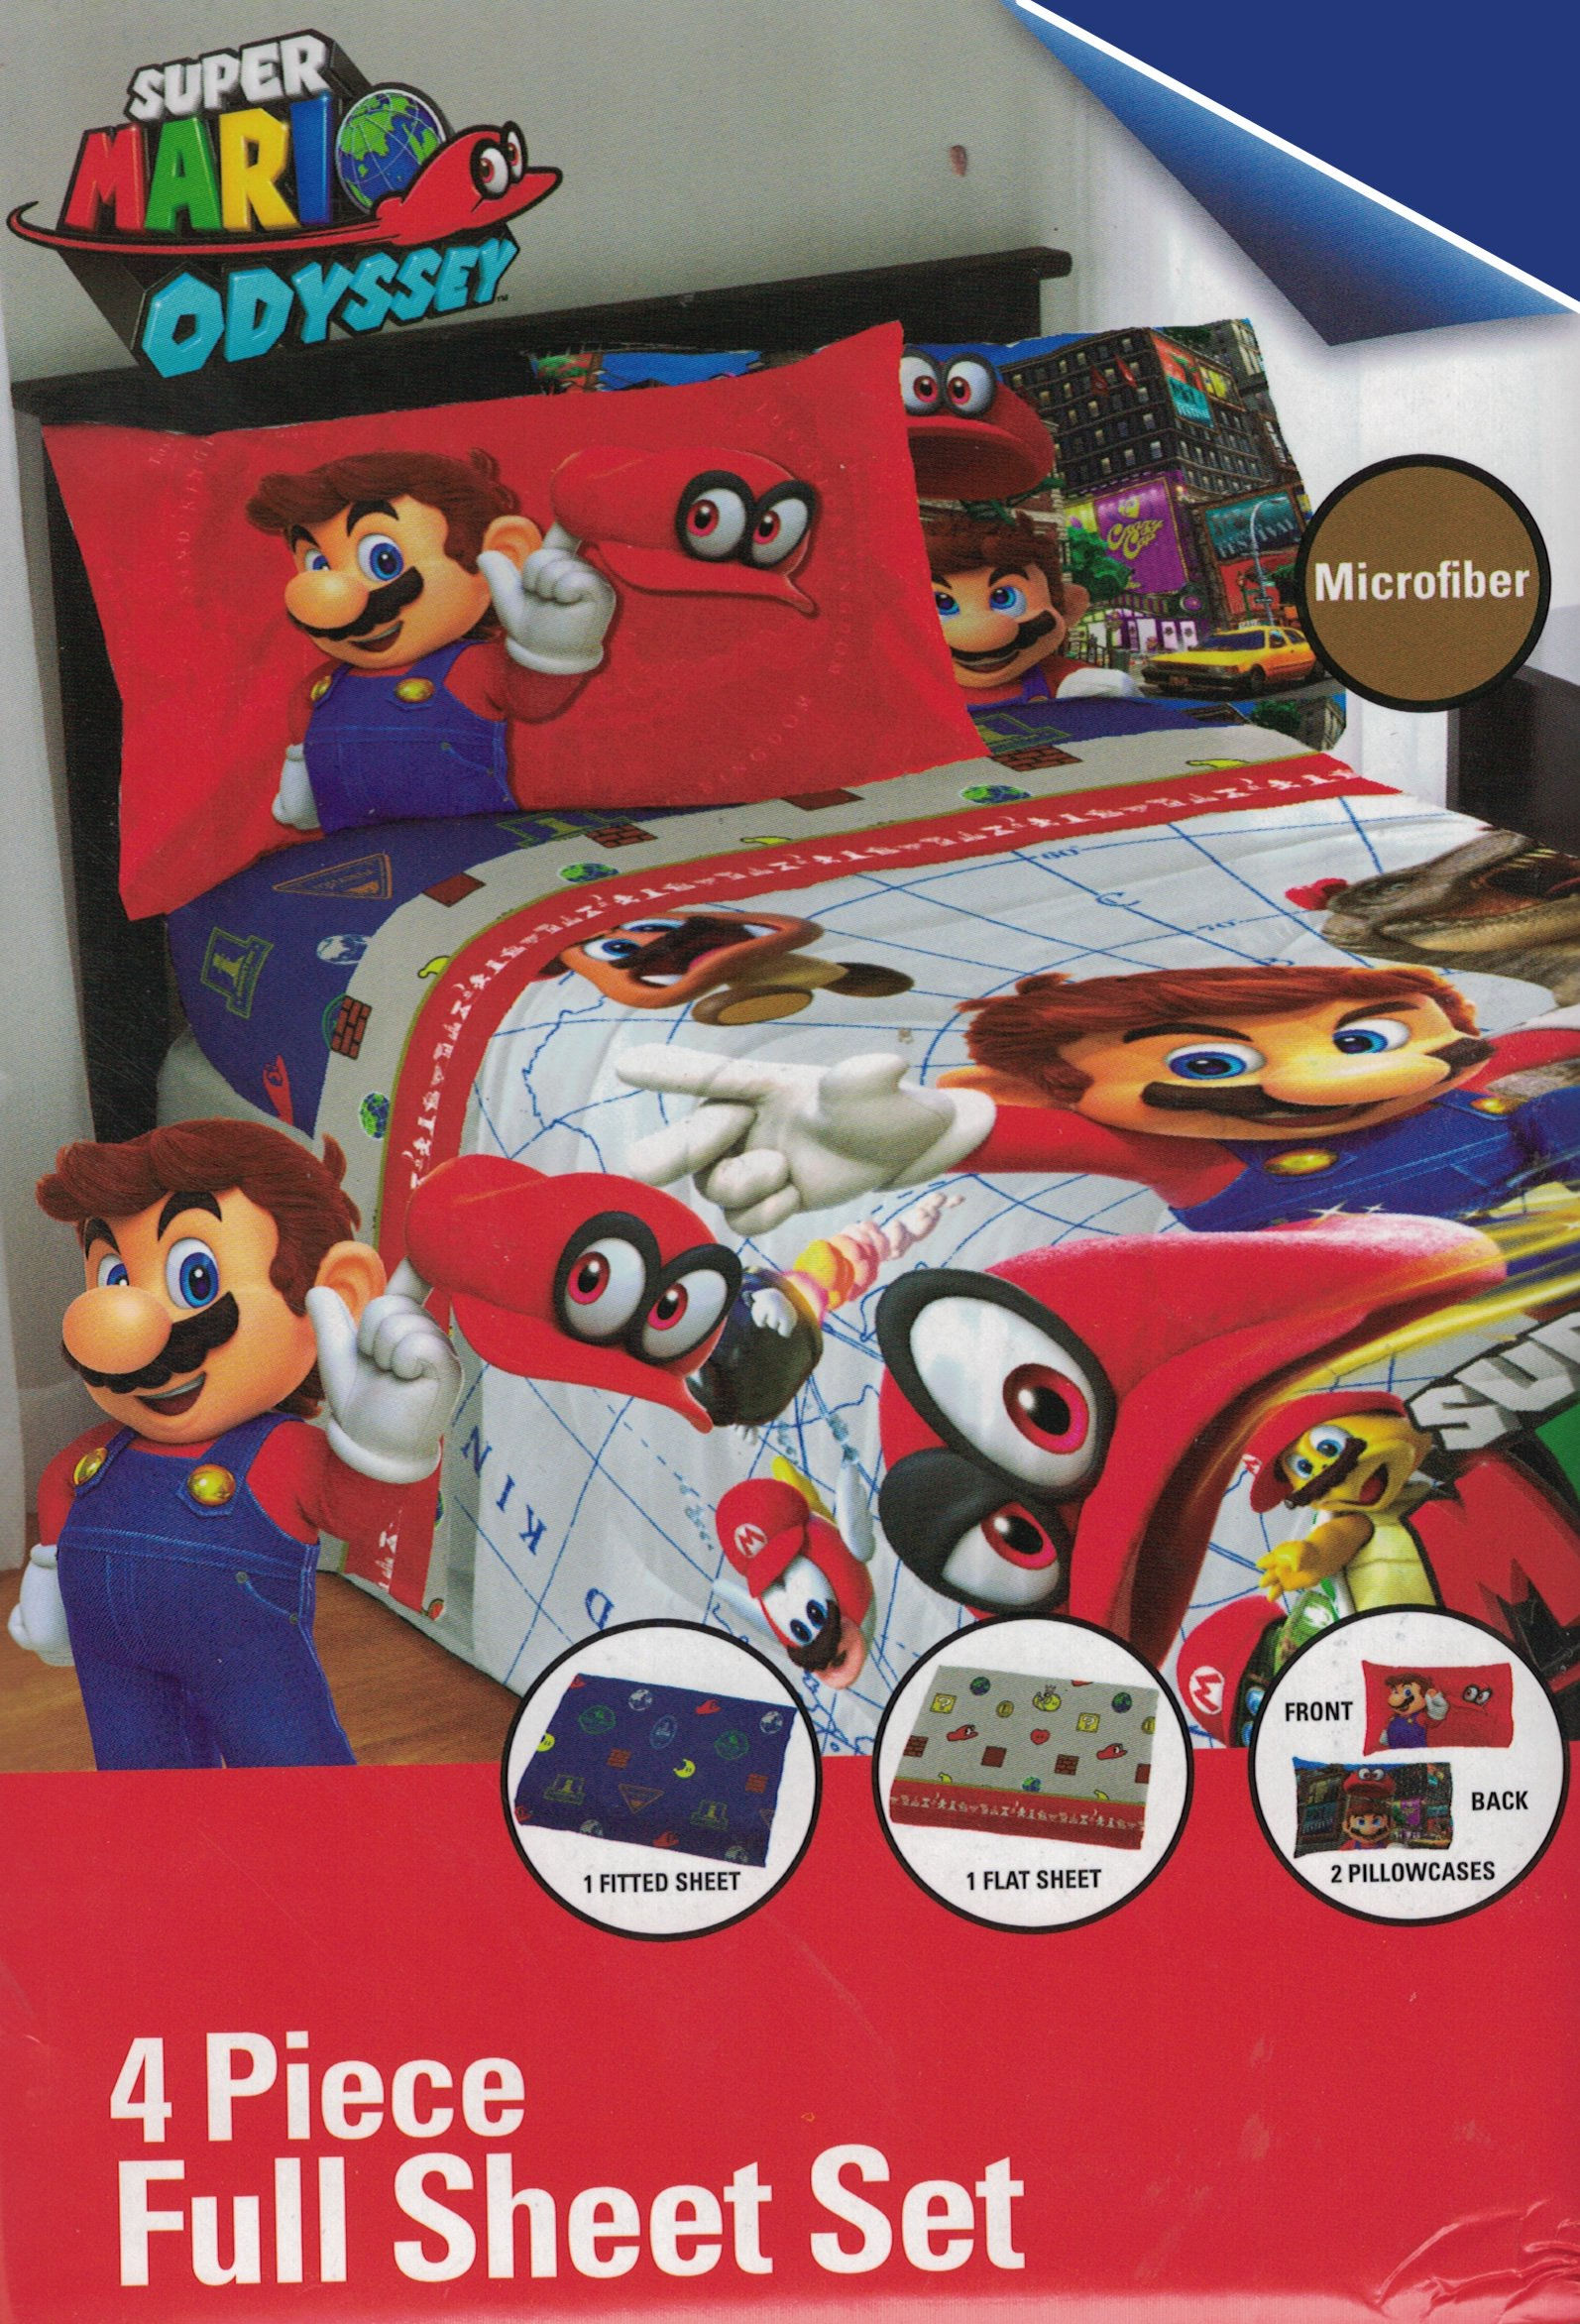 Super Mario Nintendo Odyssey 6pc Full Comforter and Sheet Set Bedding Collection, new 2018